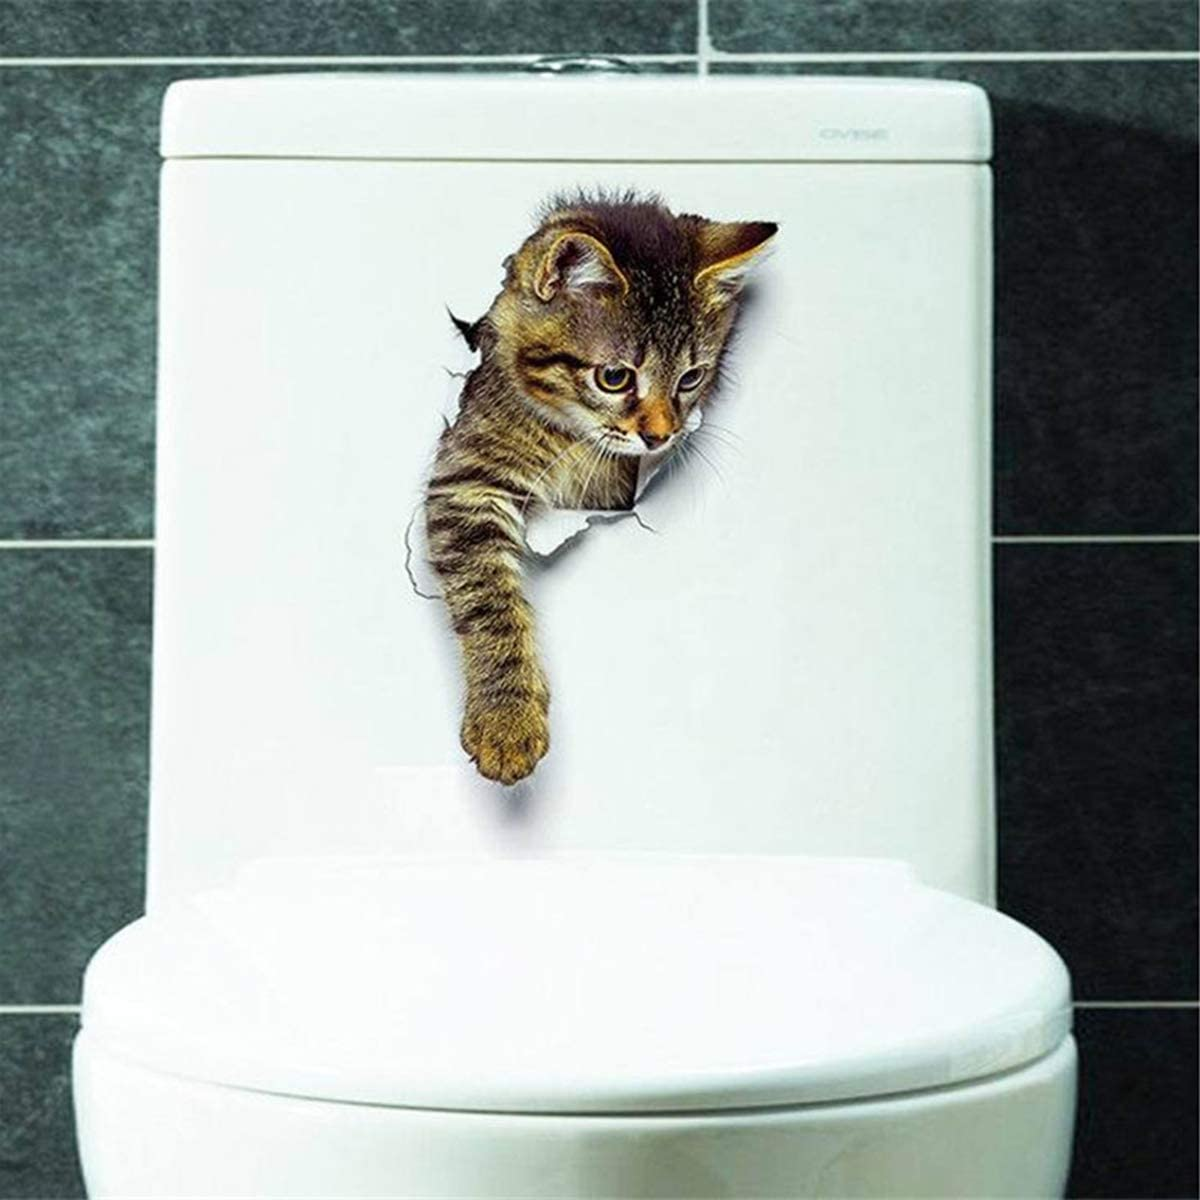 DERCLIVE 1PC 3D Hole Pop Out Cat Vivid Smashed Toilet Decal Funny Wall Sticker Bathroom Kicthen Decorative Decals Animals Poster PVC XH2002